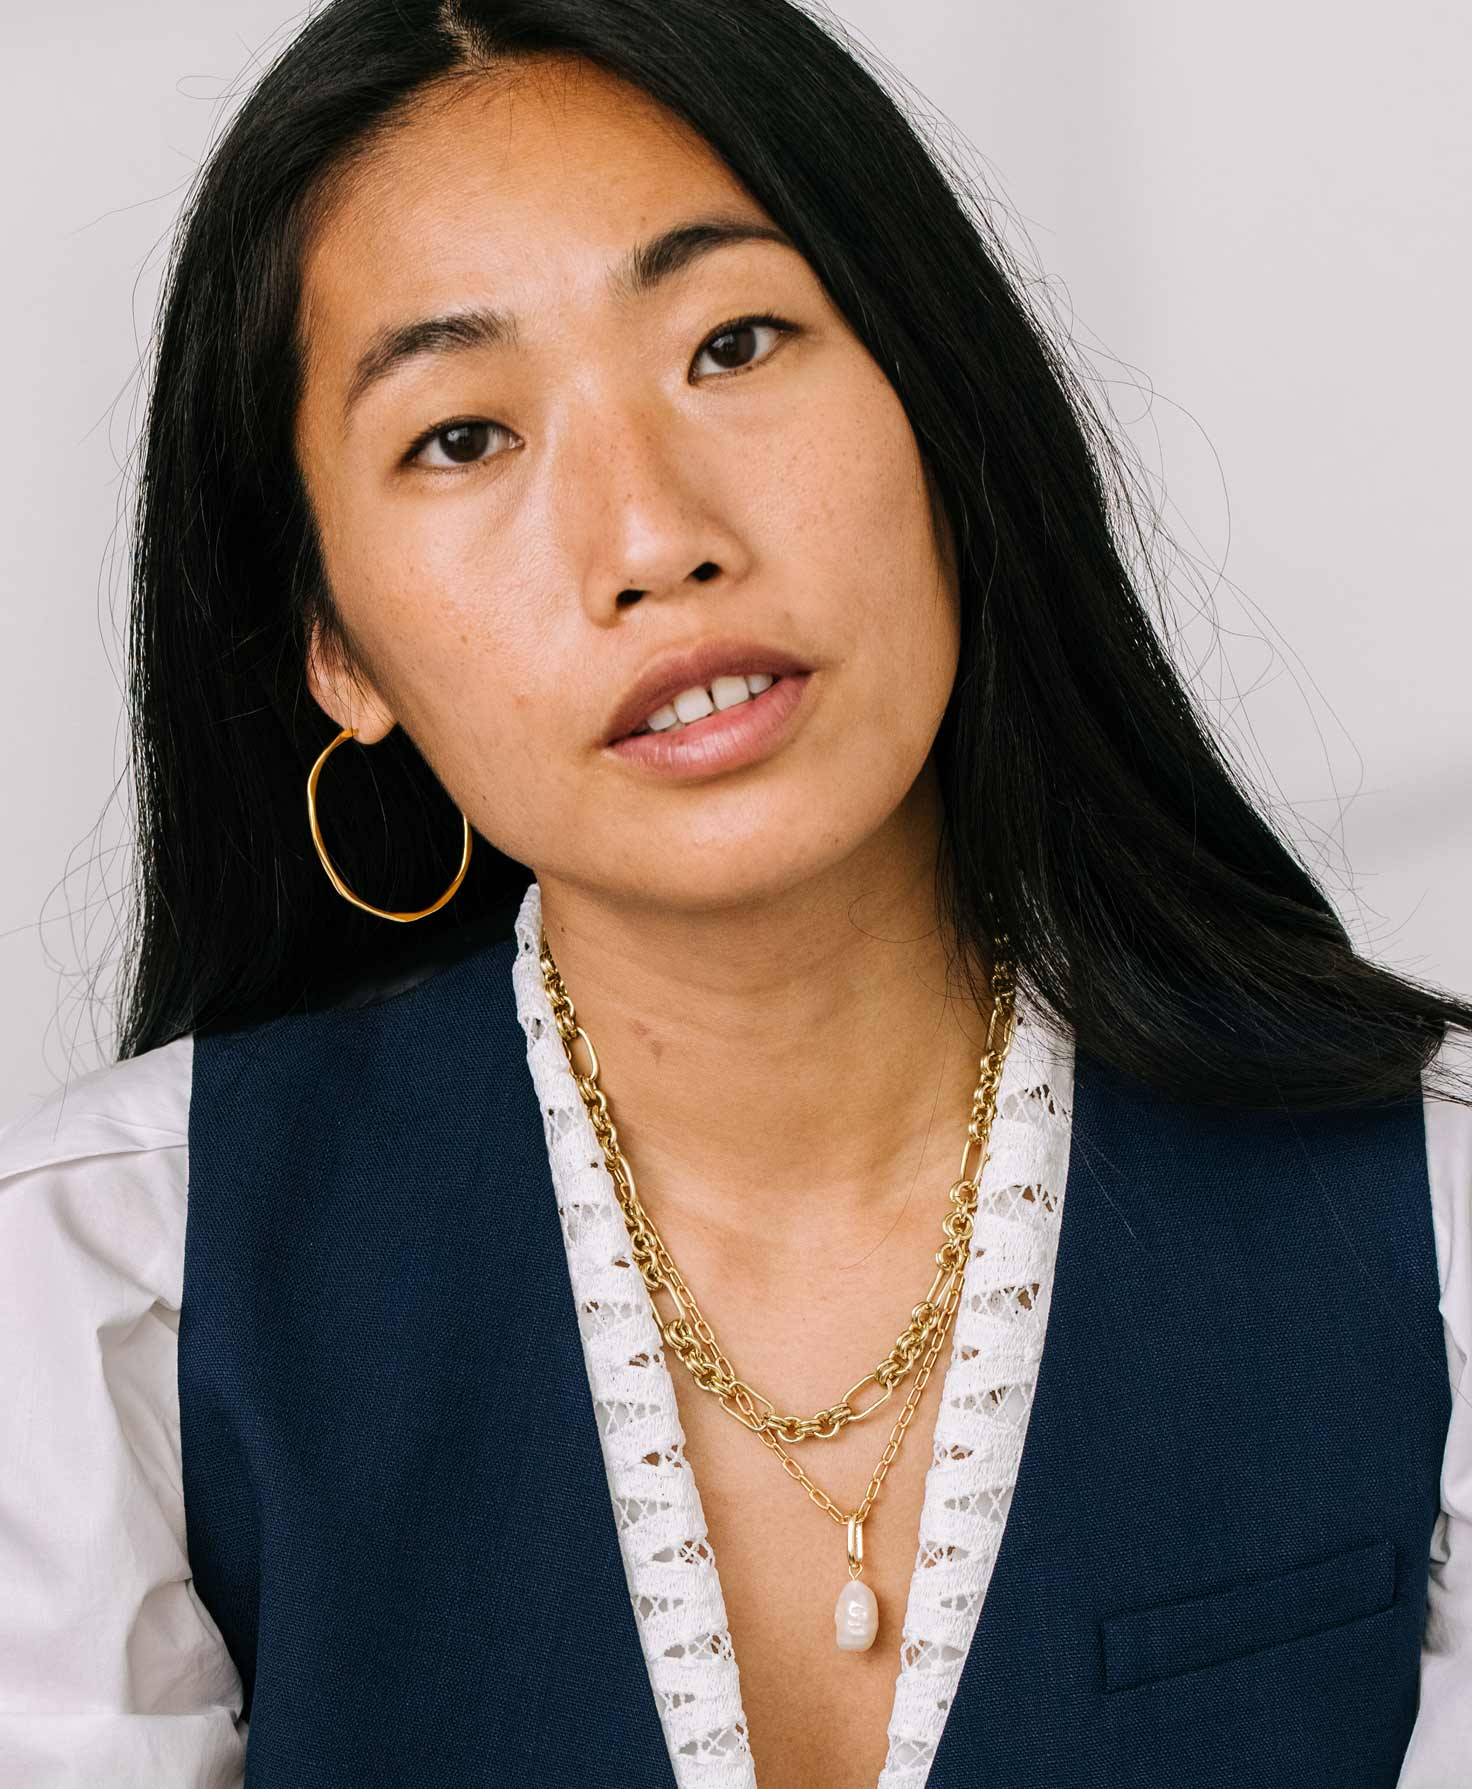 A model wears the Float Necklace layered with the Gold Rush Necklace, which has a similar gold chain with elongated links. She finishes her look with the Signal Hoops, which have the same shiny gold finish as the necklaces.